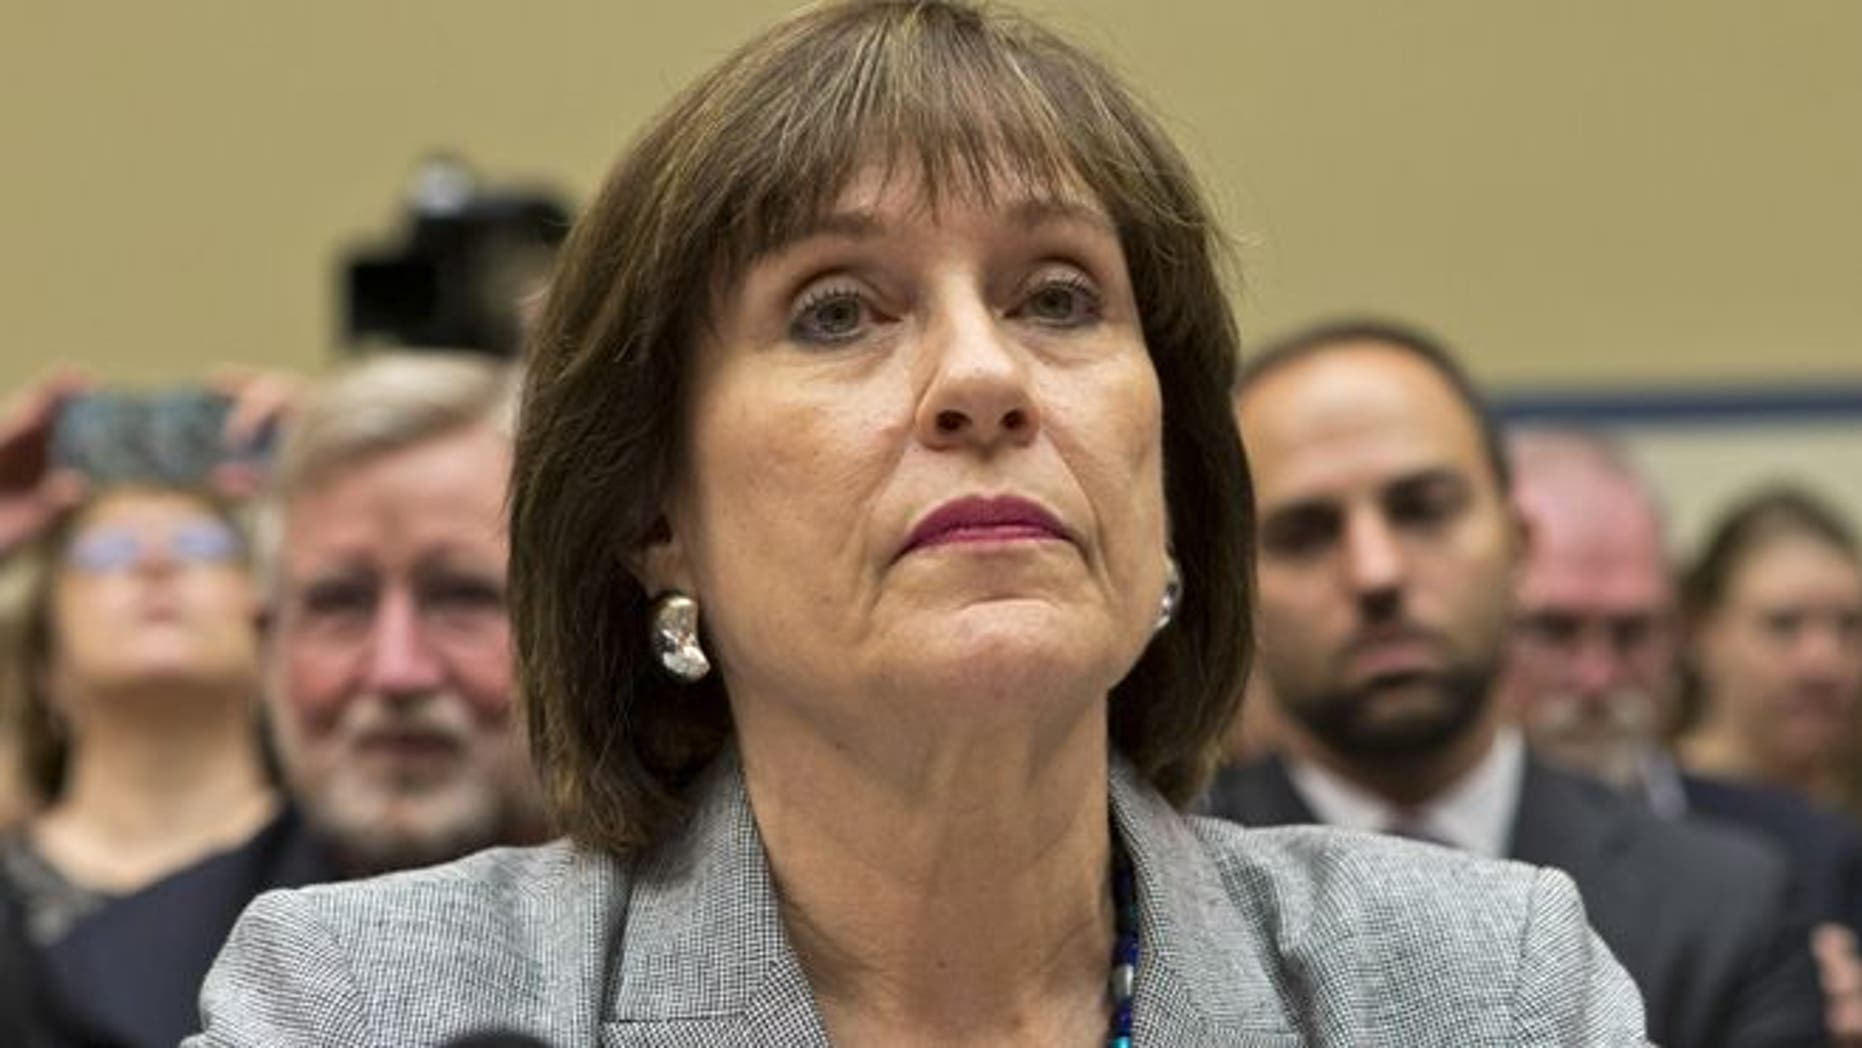 May 22, 2013: Lois Lerner, head of the IRS unit that decides whether to grant tax-exempt status to groups, listens on Capitol Hill in Washington.